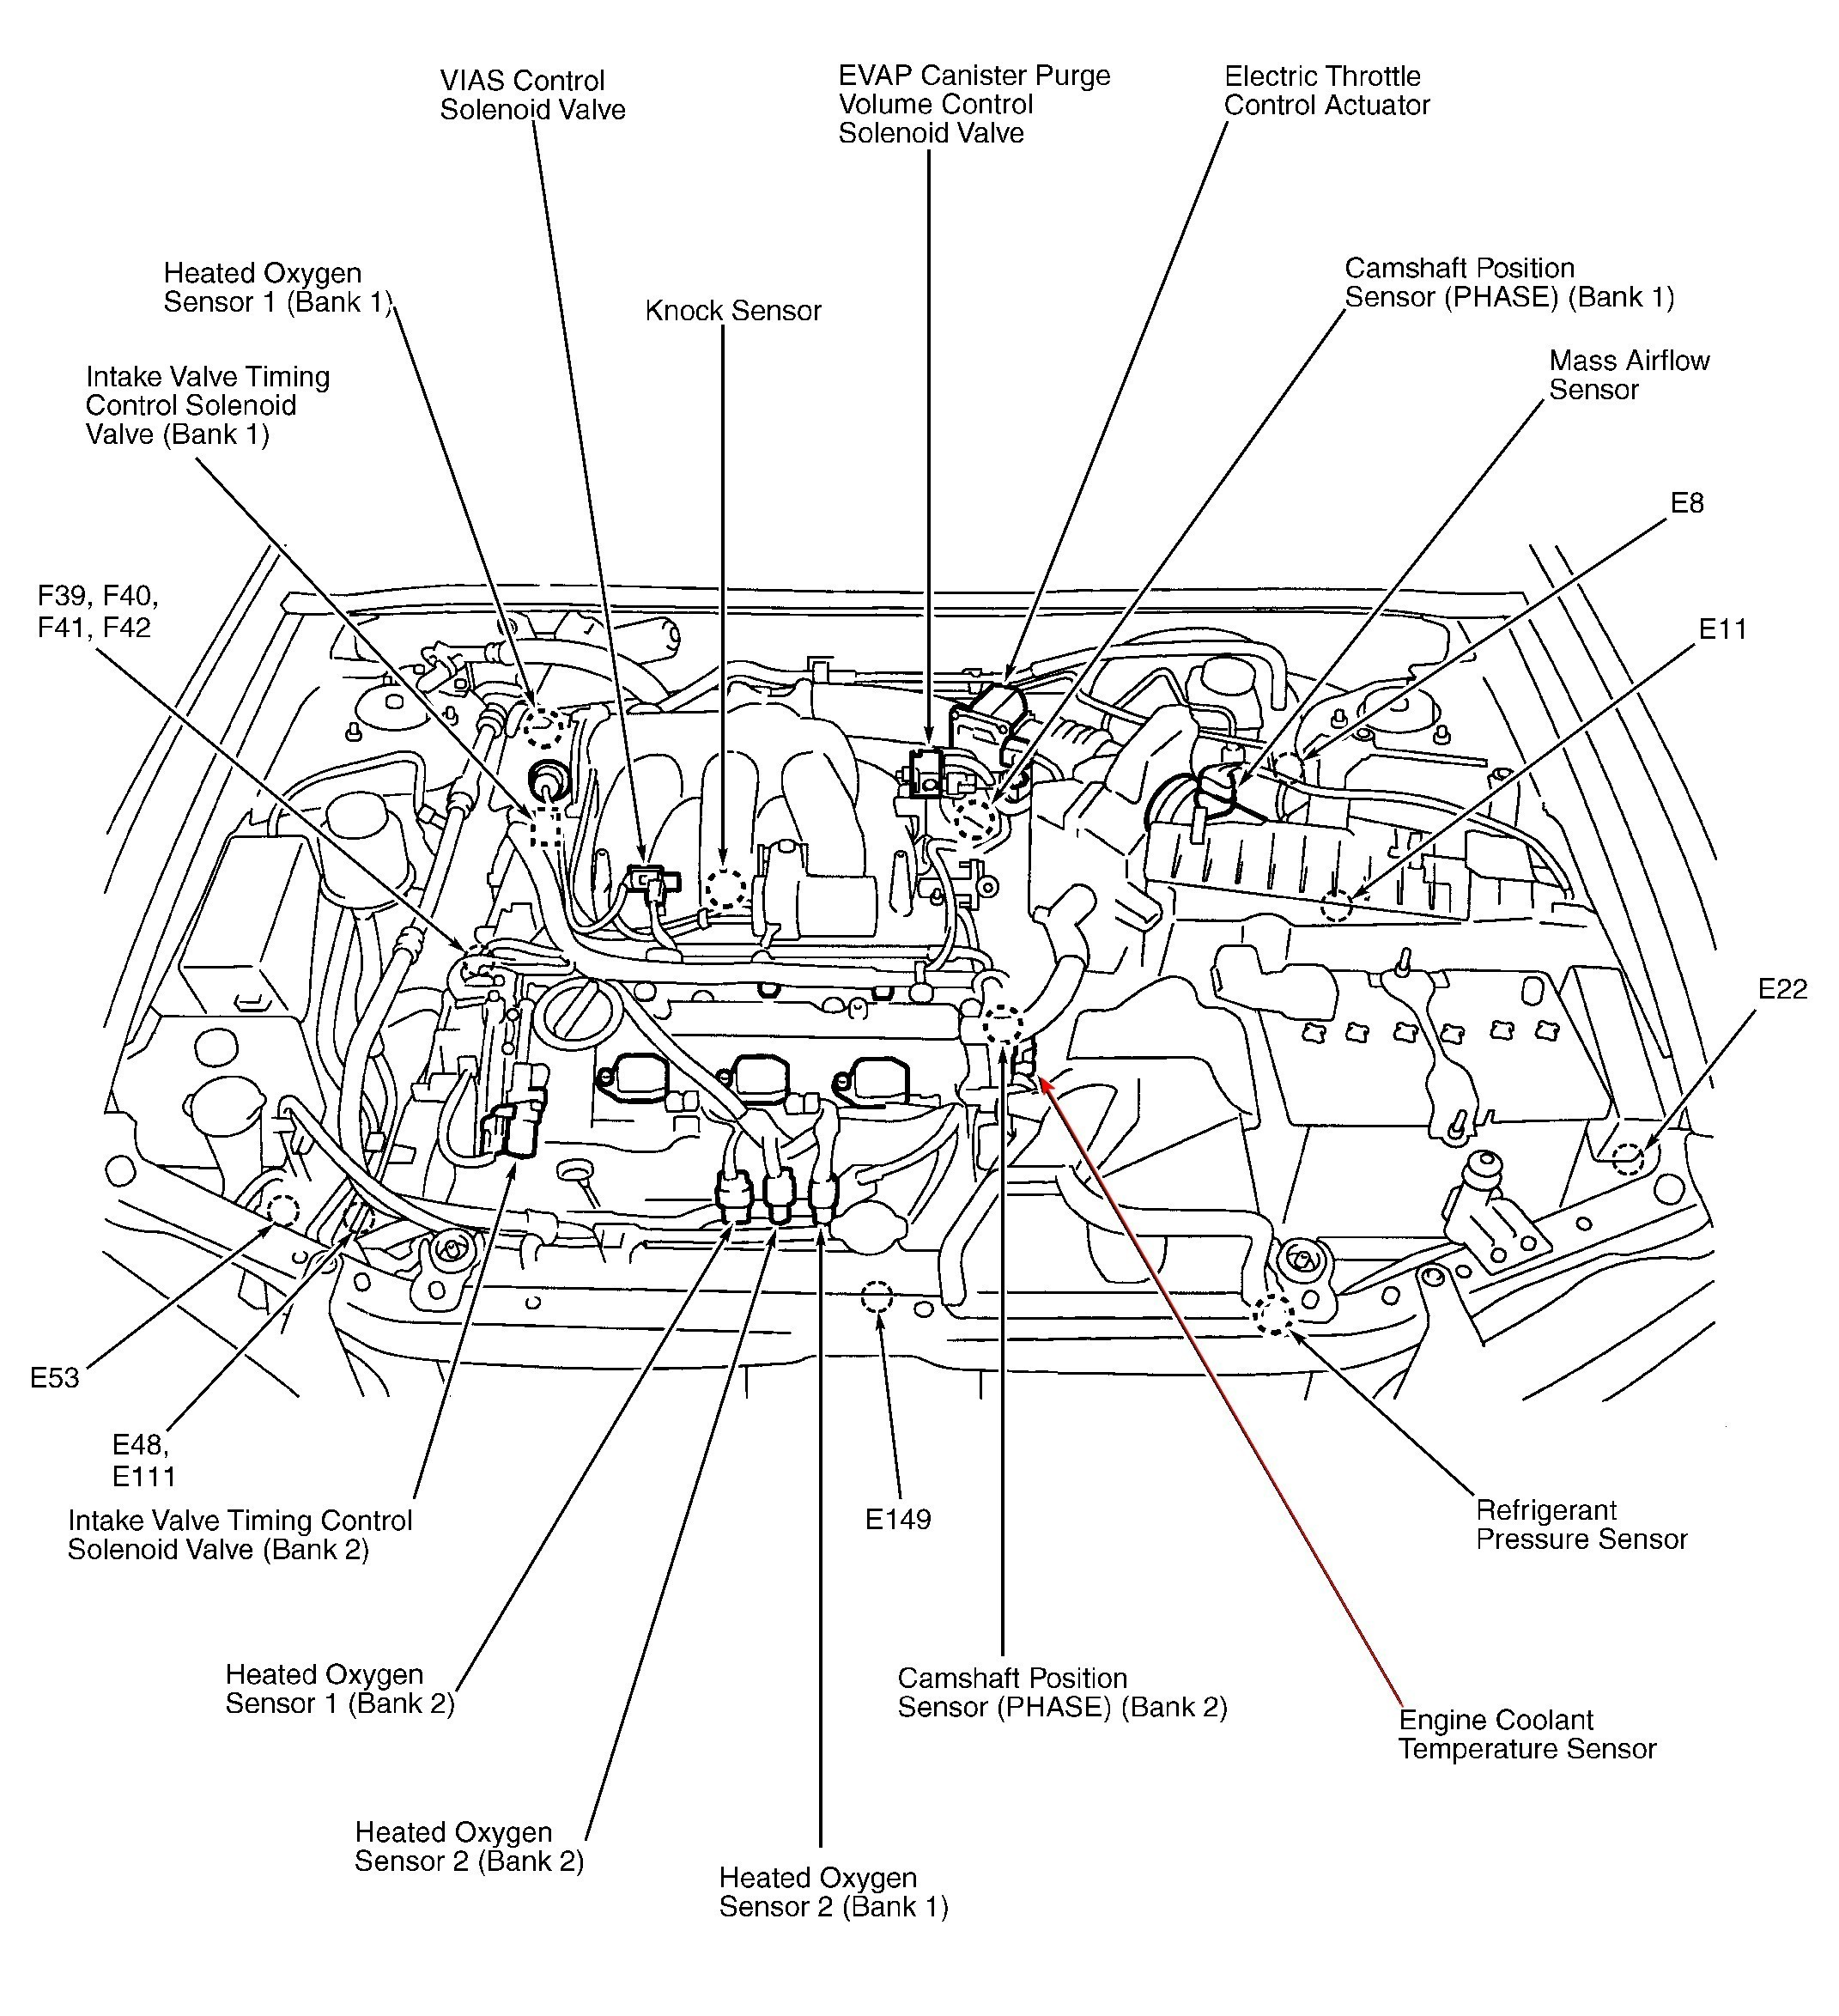 Honda Gx120 Parts Diagram Mini Cooper Fuses Auto Wiring Diagrams Instructions Fuse 2142x2348